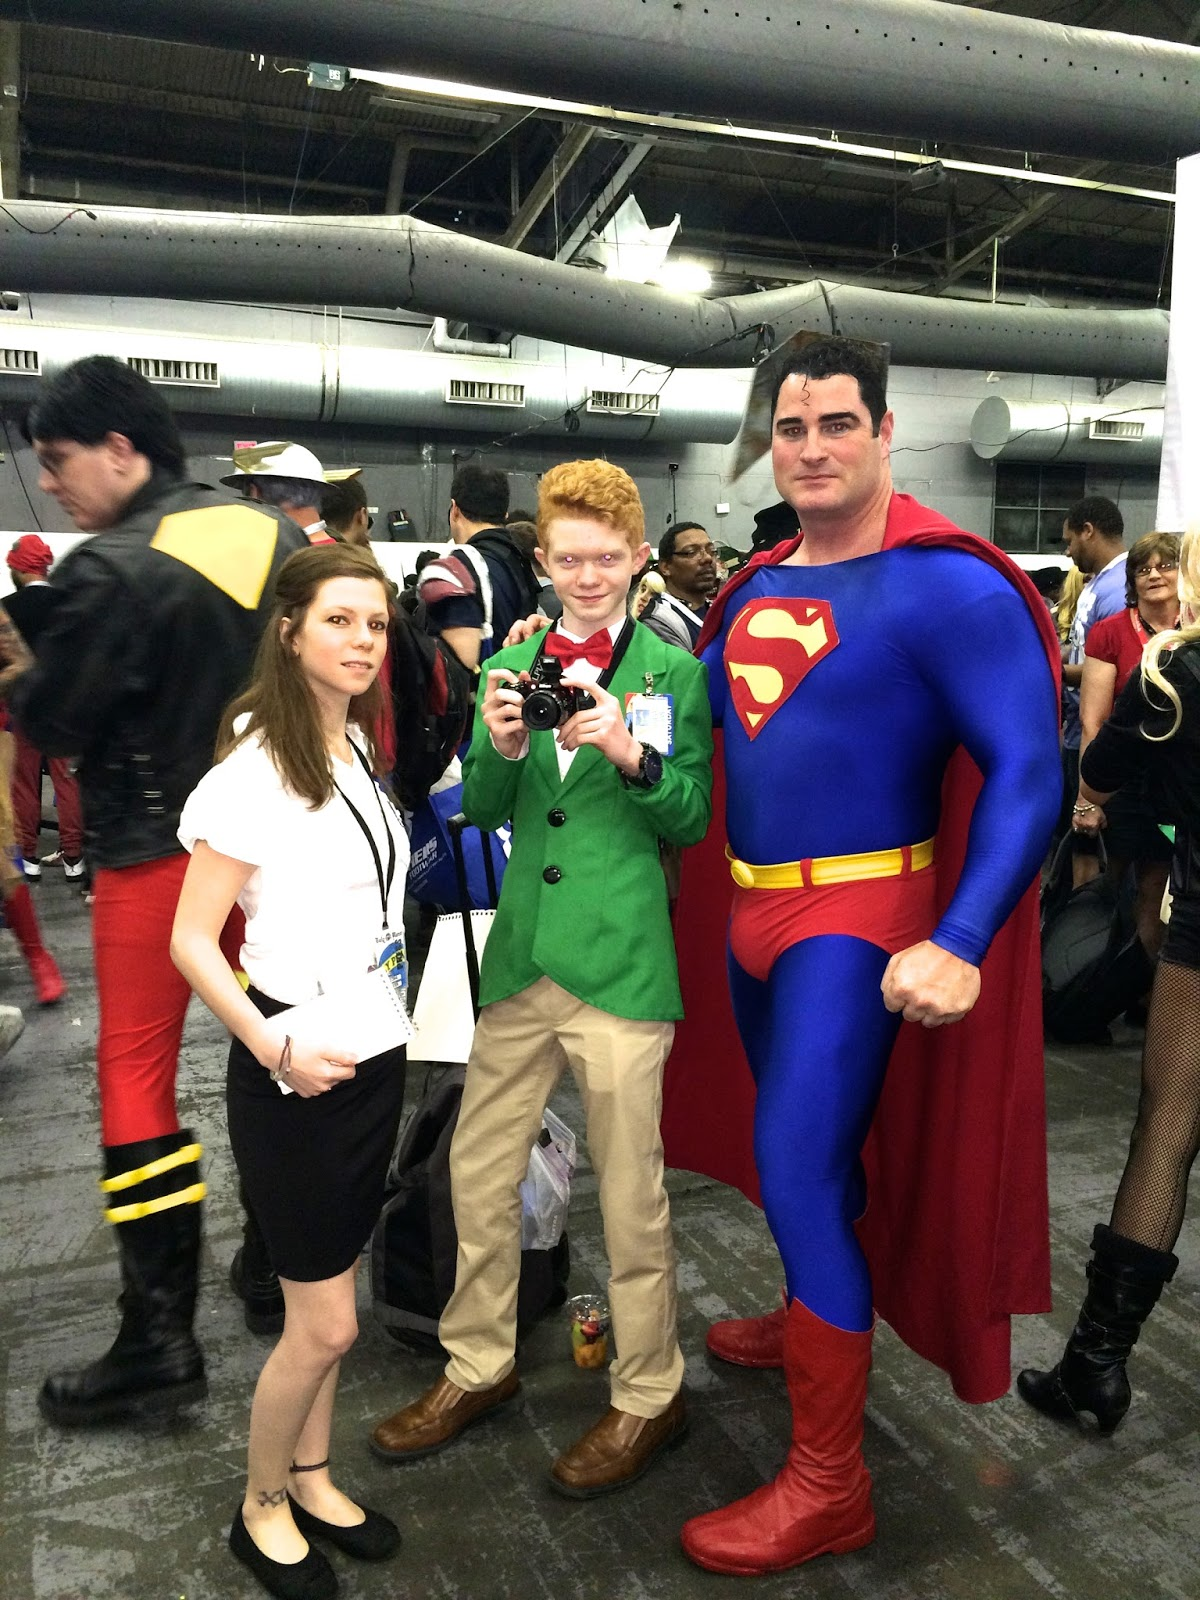 Special Edition NYC Superman characters Lois Lane cosplay Jimmy Olsen